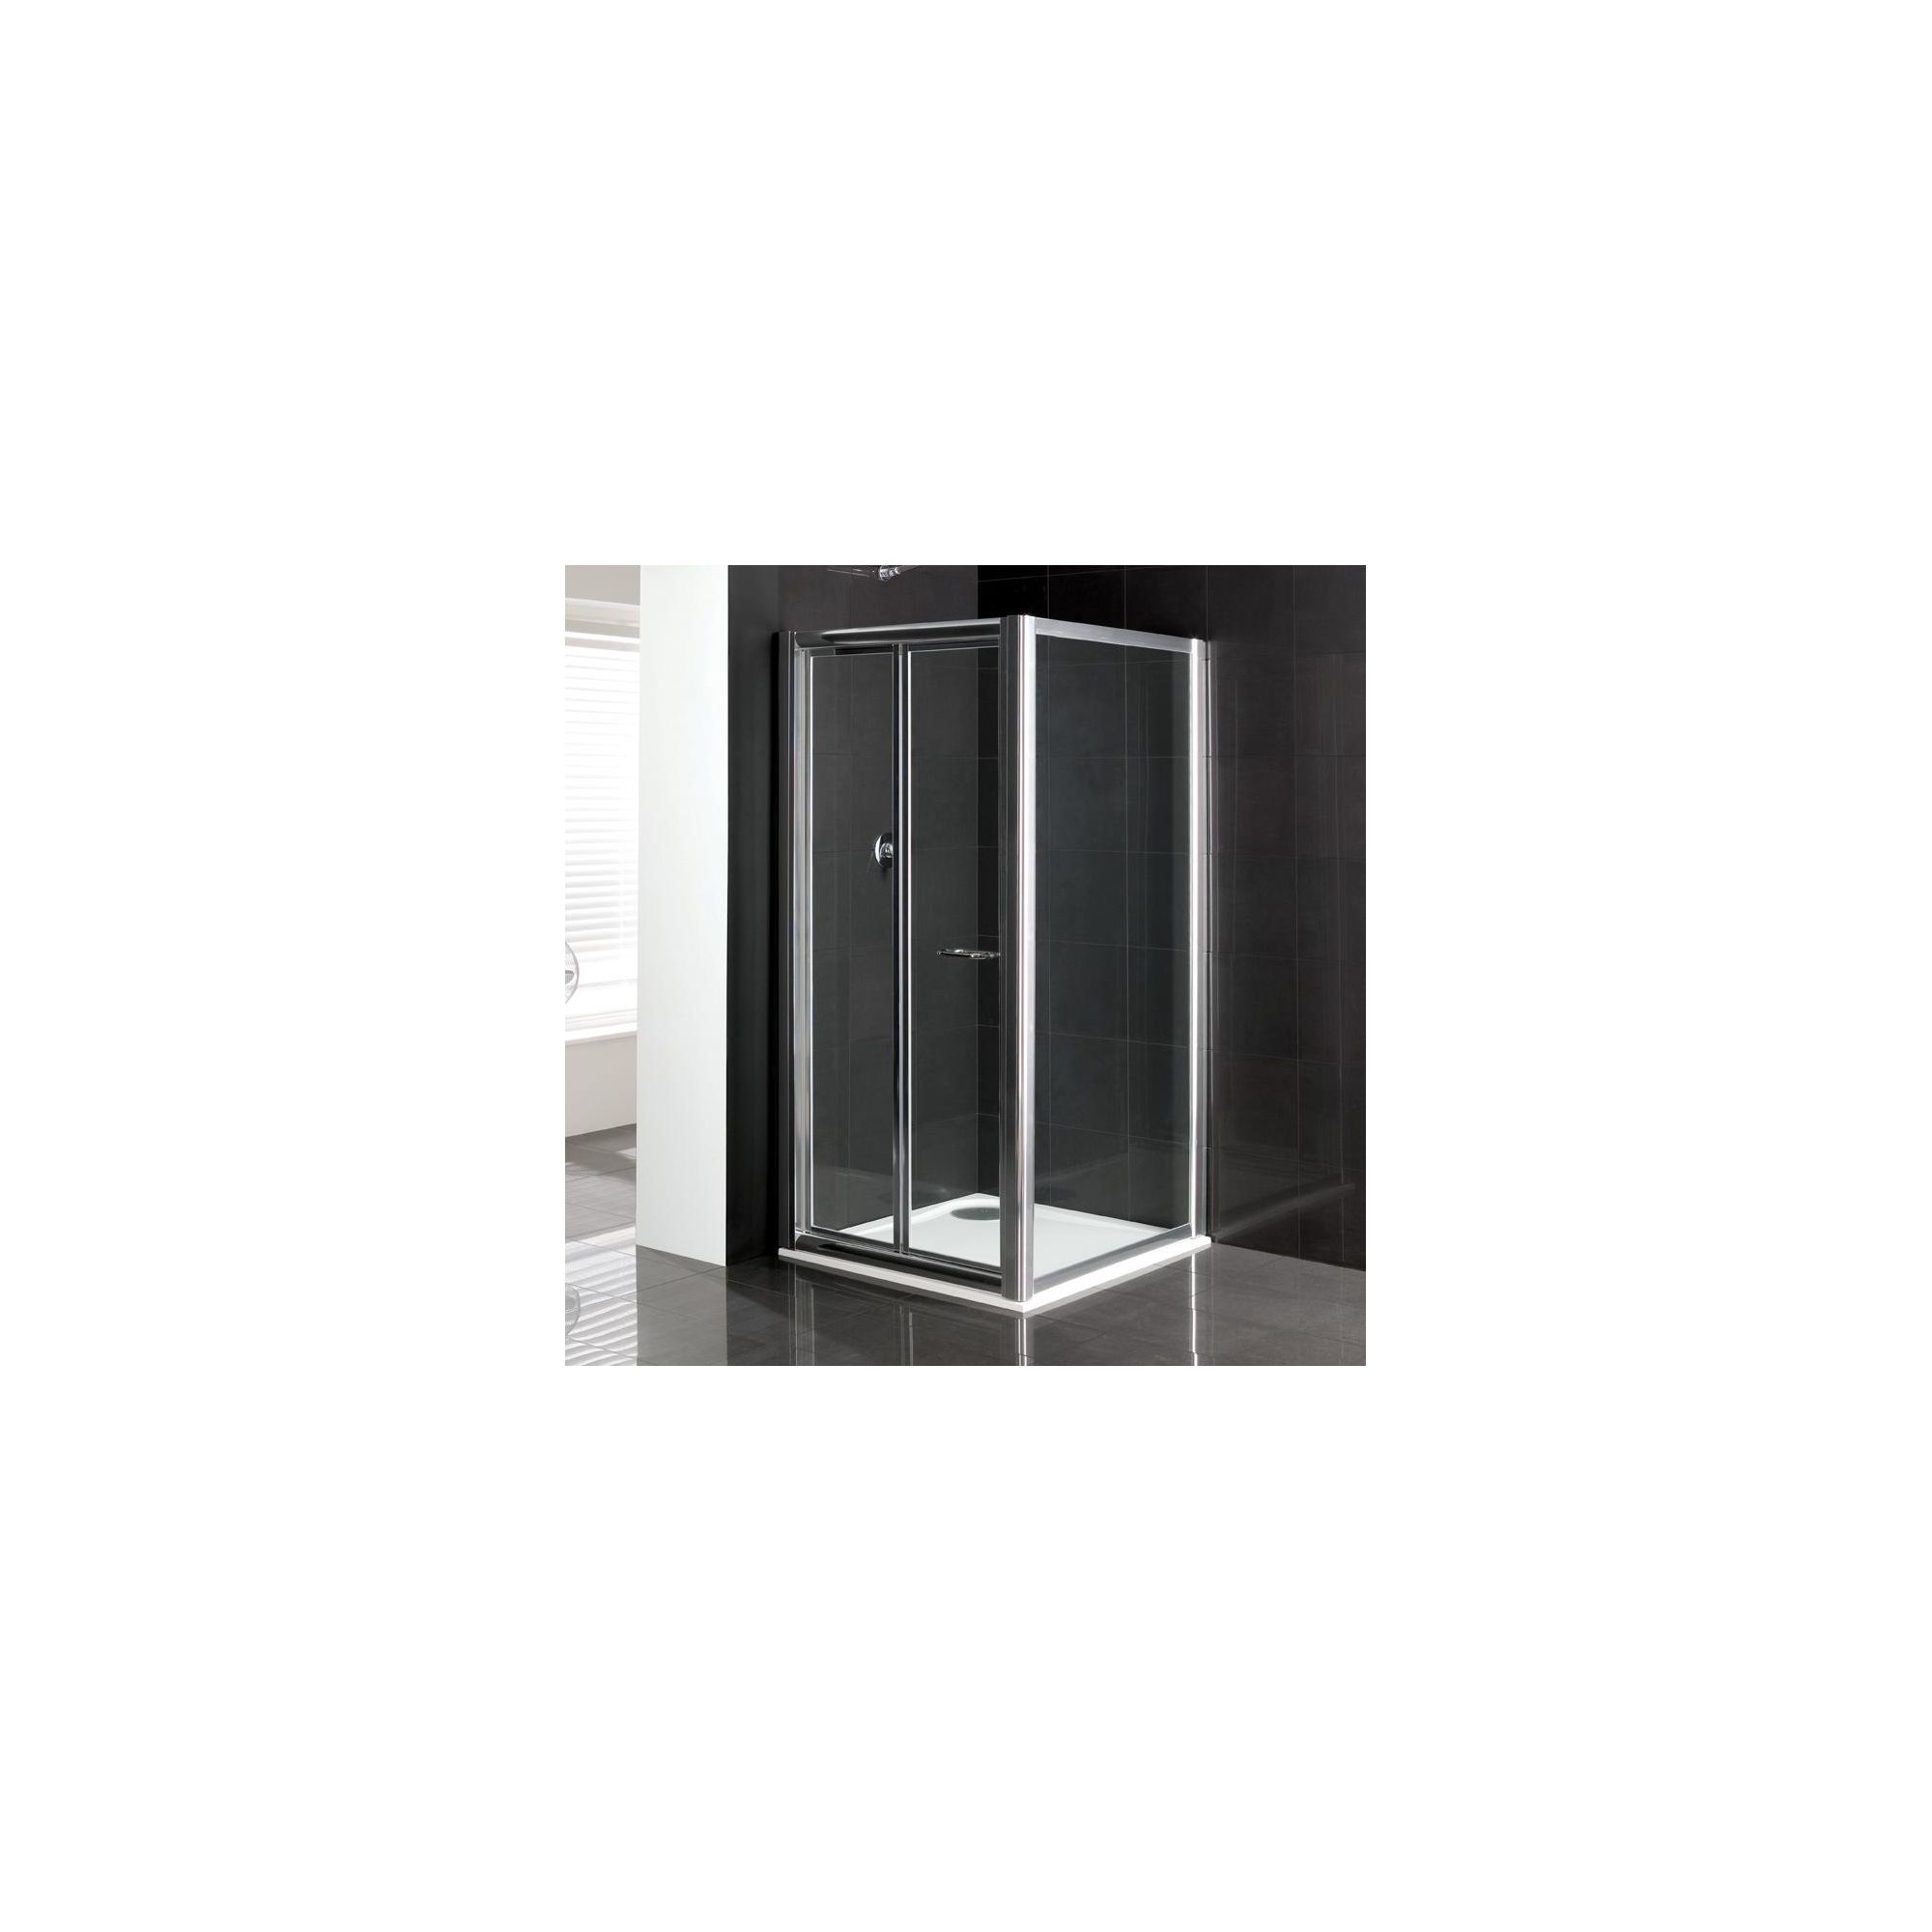 Duchy Elite Silver Bi-Fold Door Shower Enclosure, 1000mm x 900mm, Standard Tray, 6mm Glass at Tesco Direct